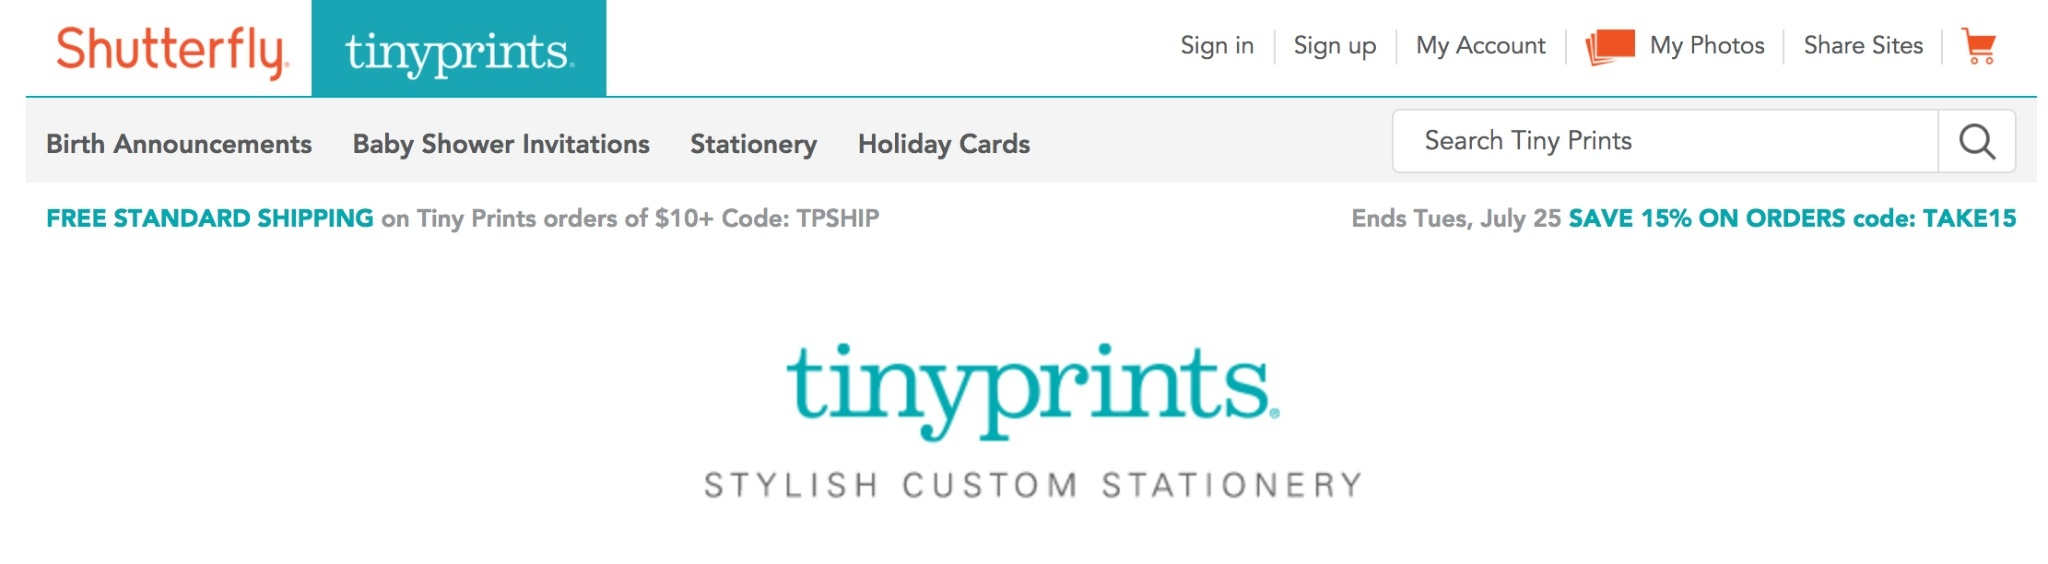 tiny prints free shipping code new deals